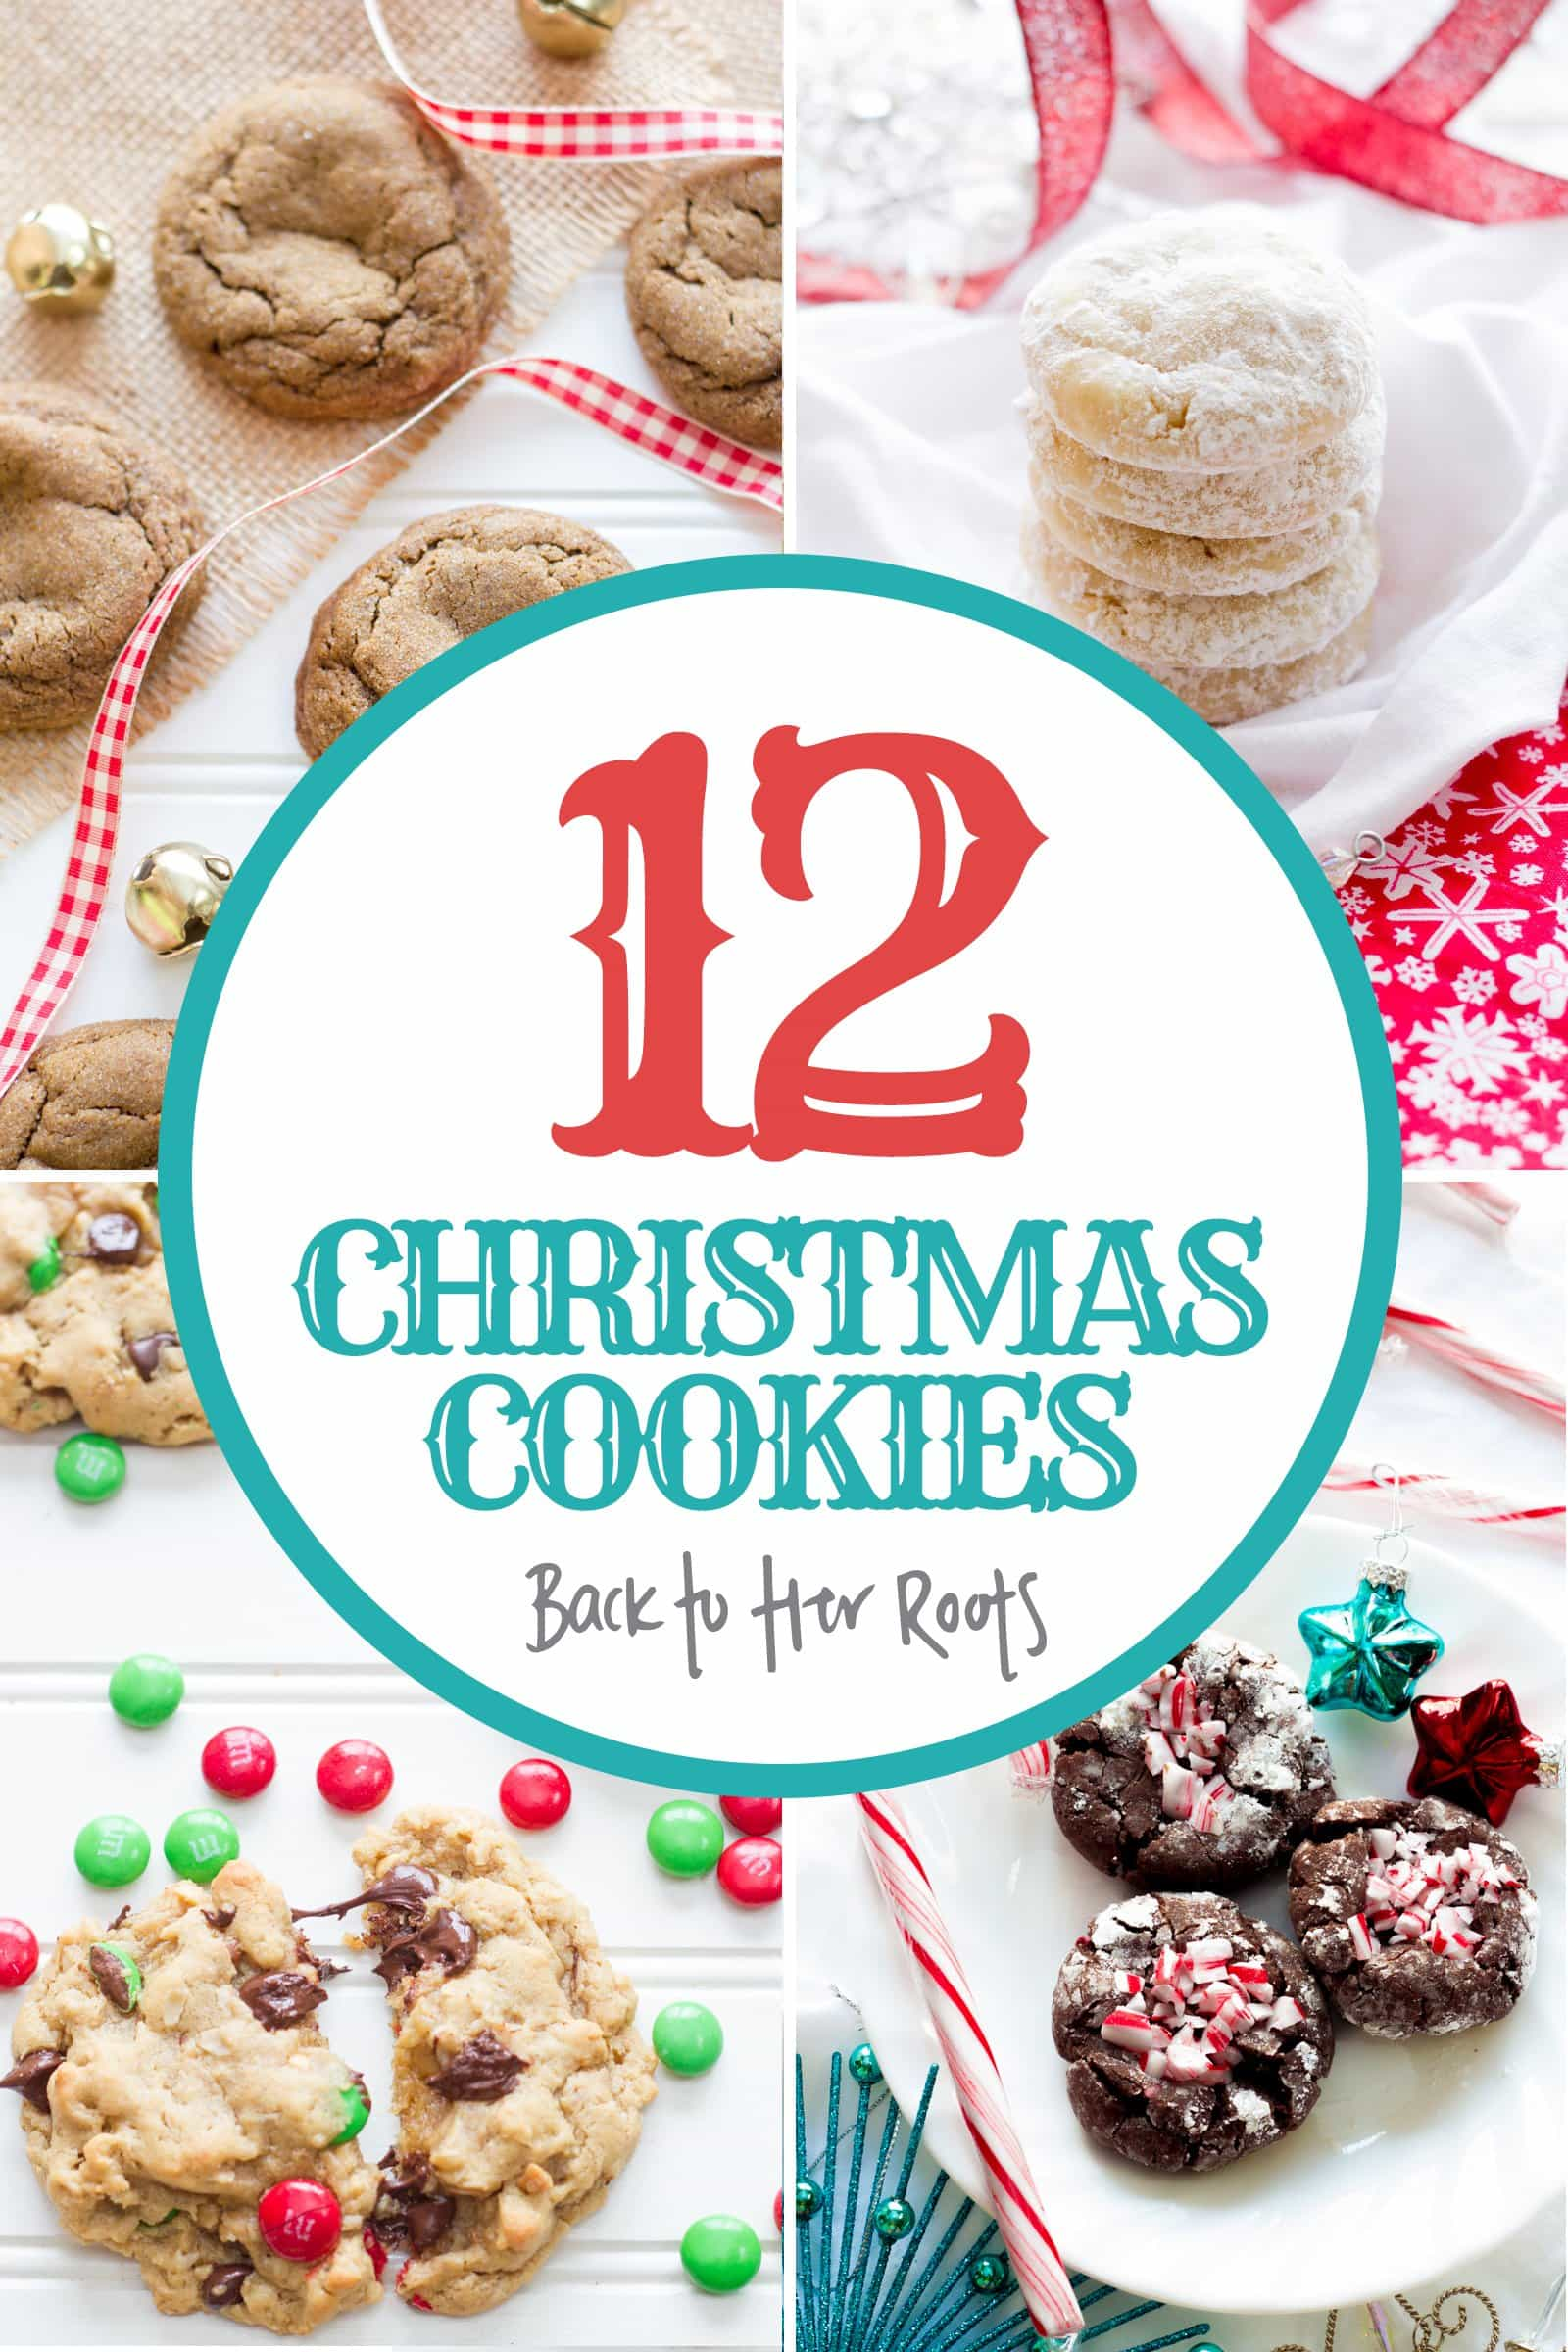 12 Christmas Cookie Recipes from Back to Her Roots